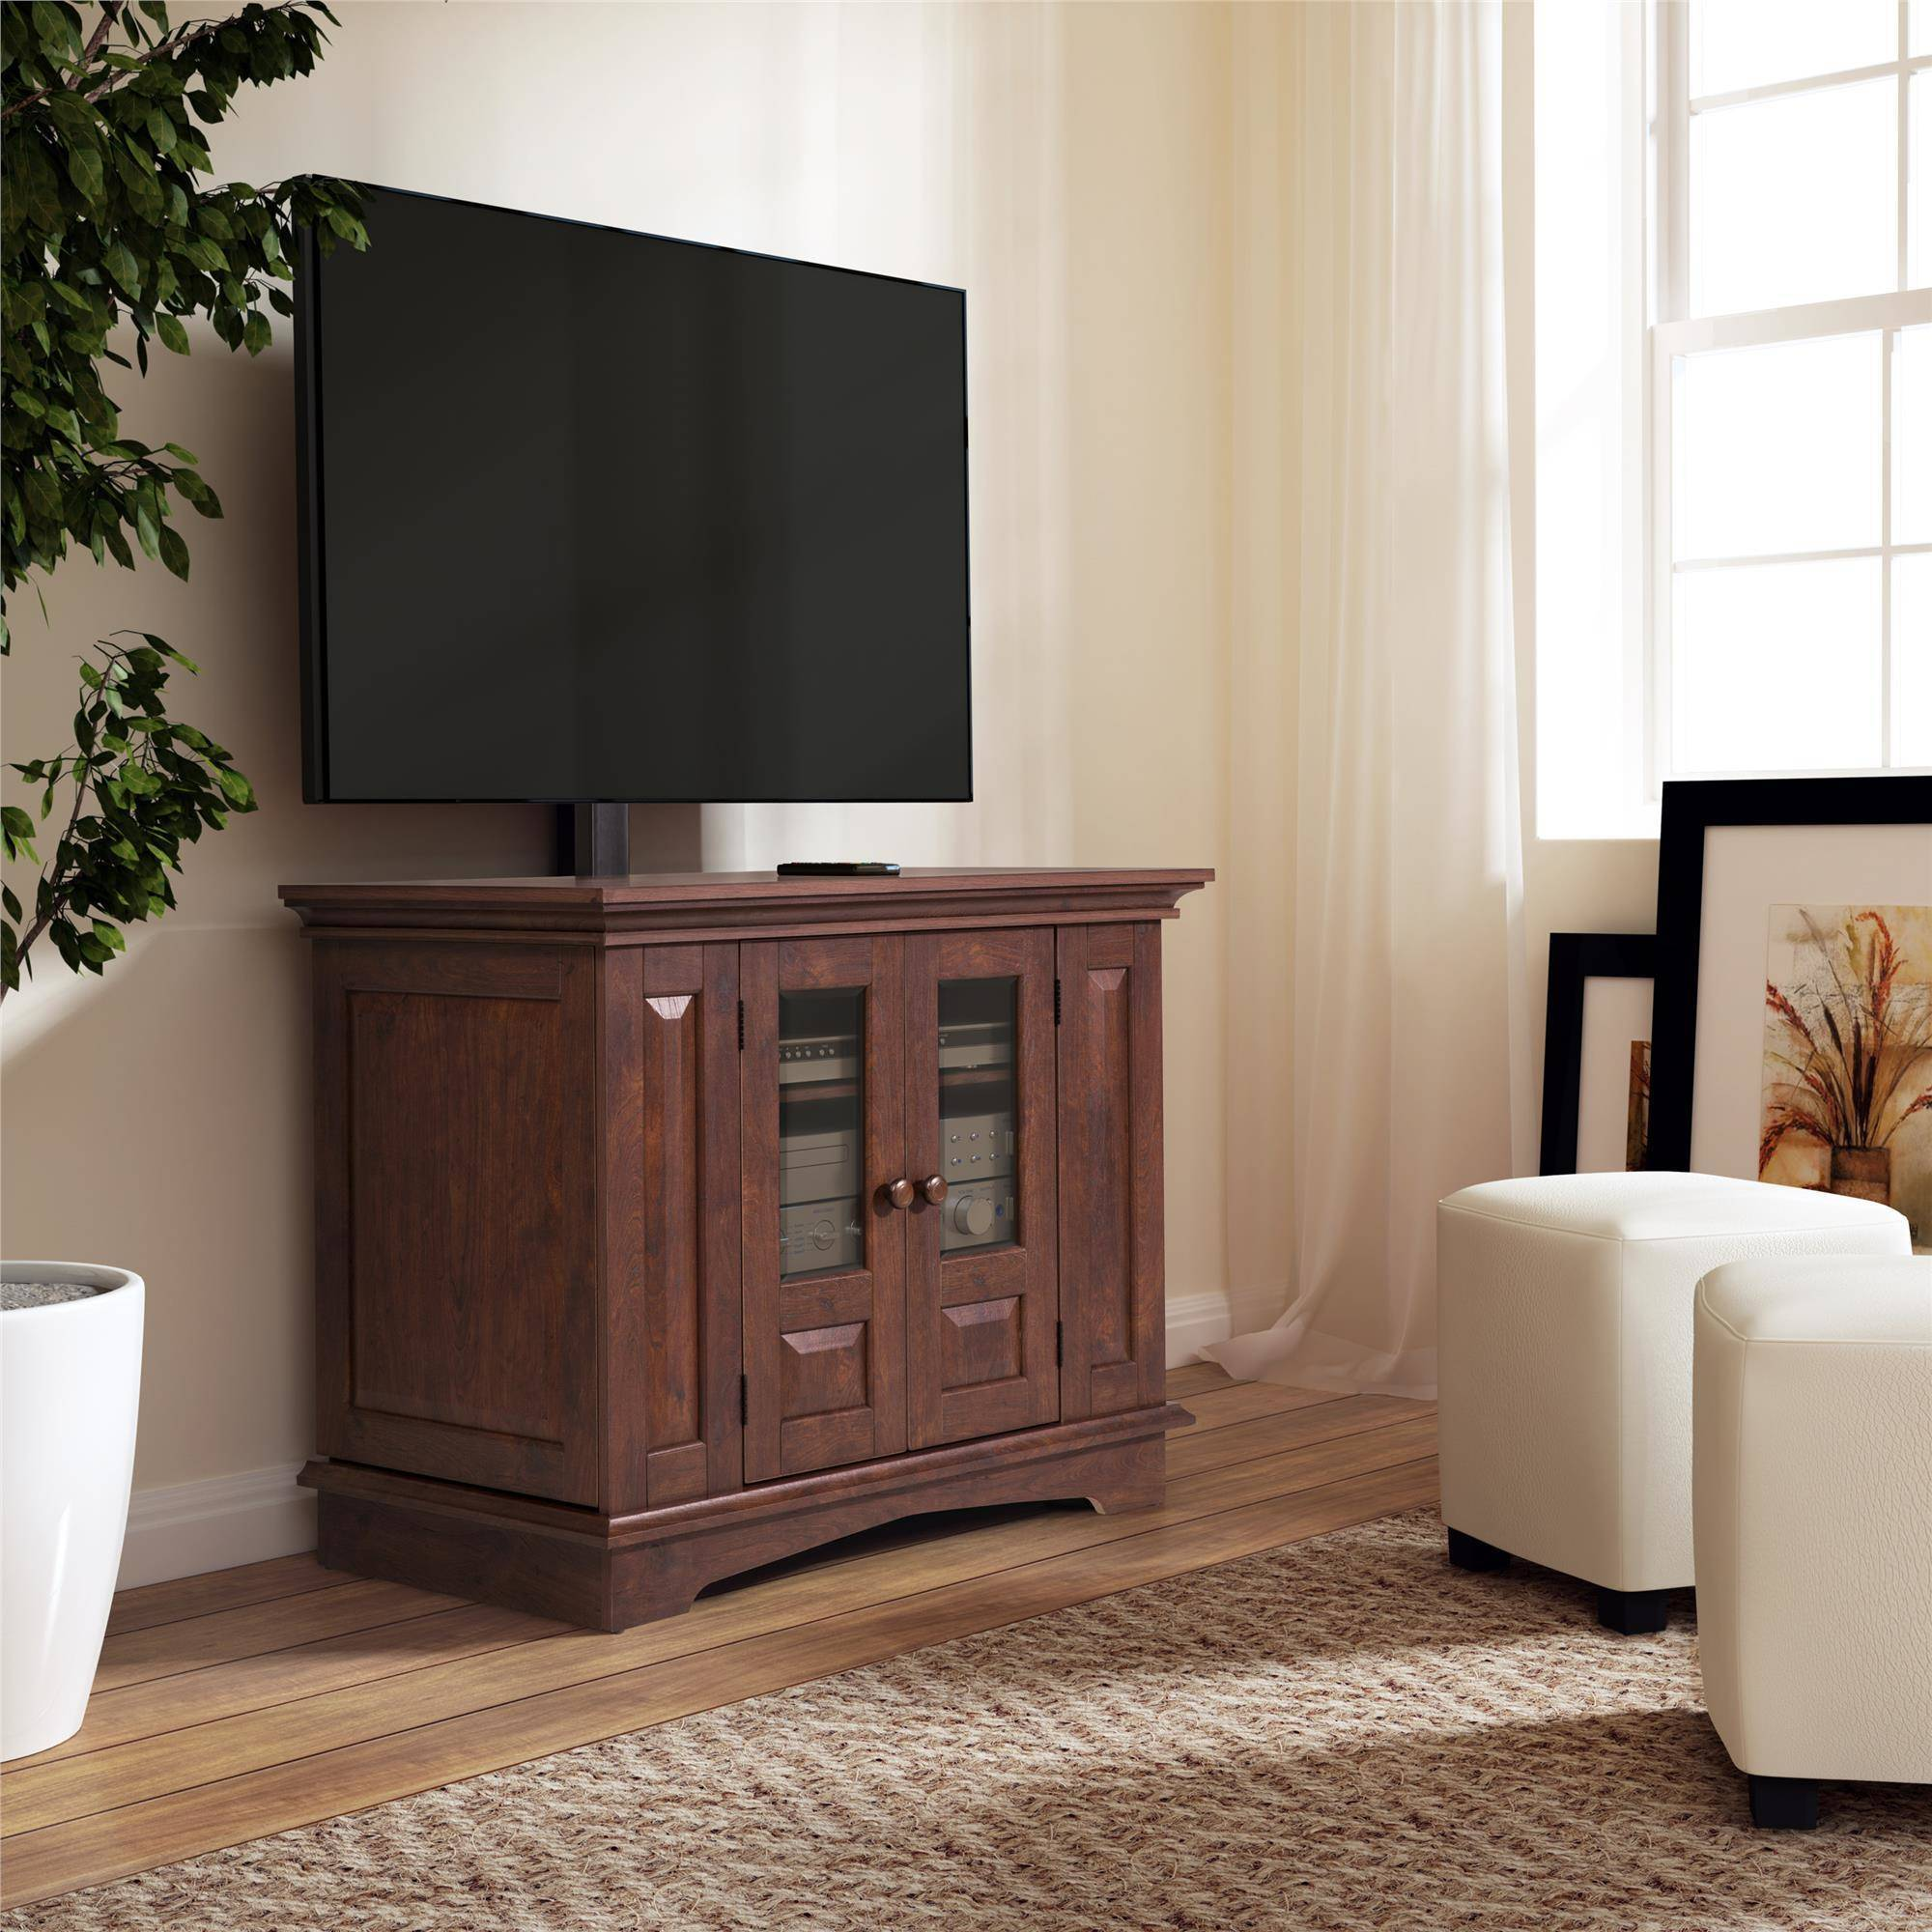 Willow Mountain Cherry TV Stand with Mount, for TVs up to 37""